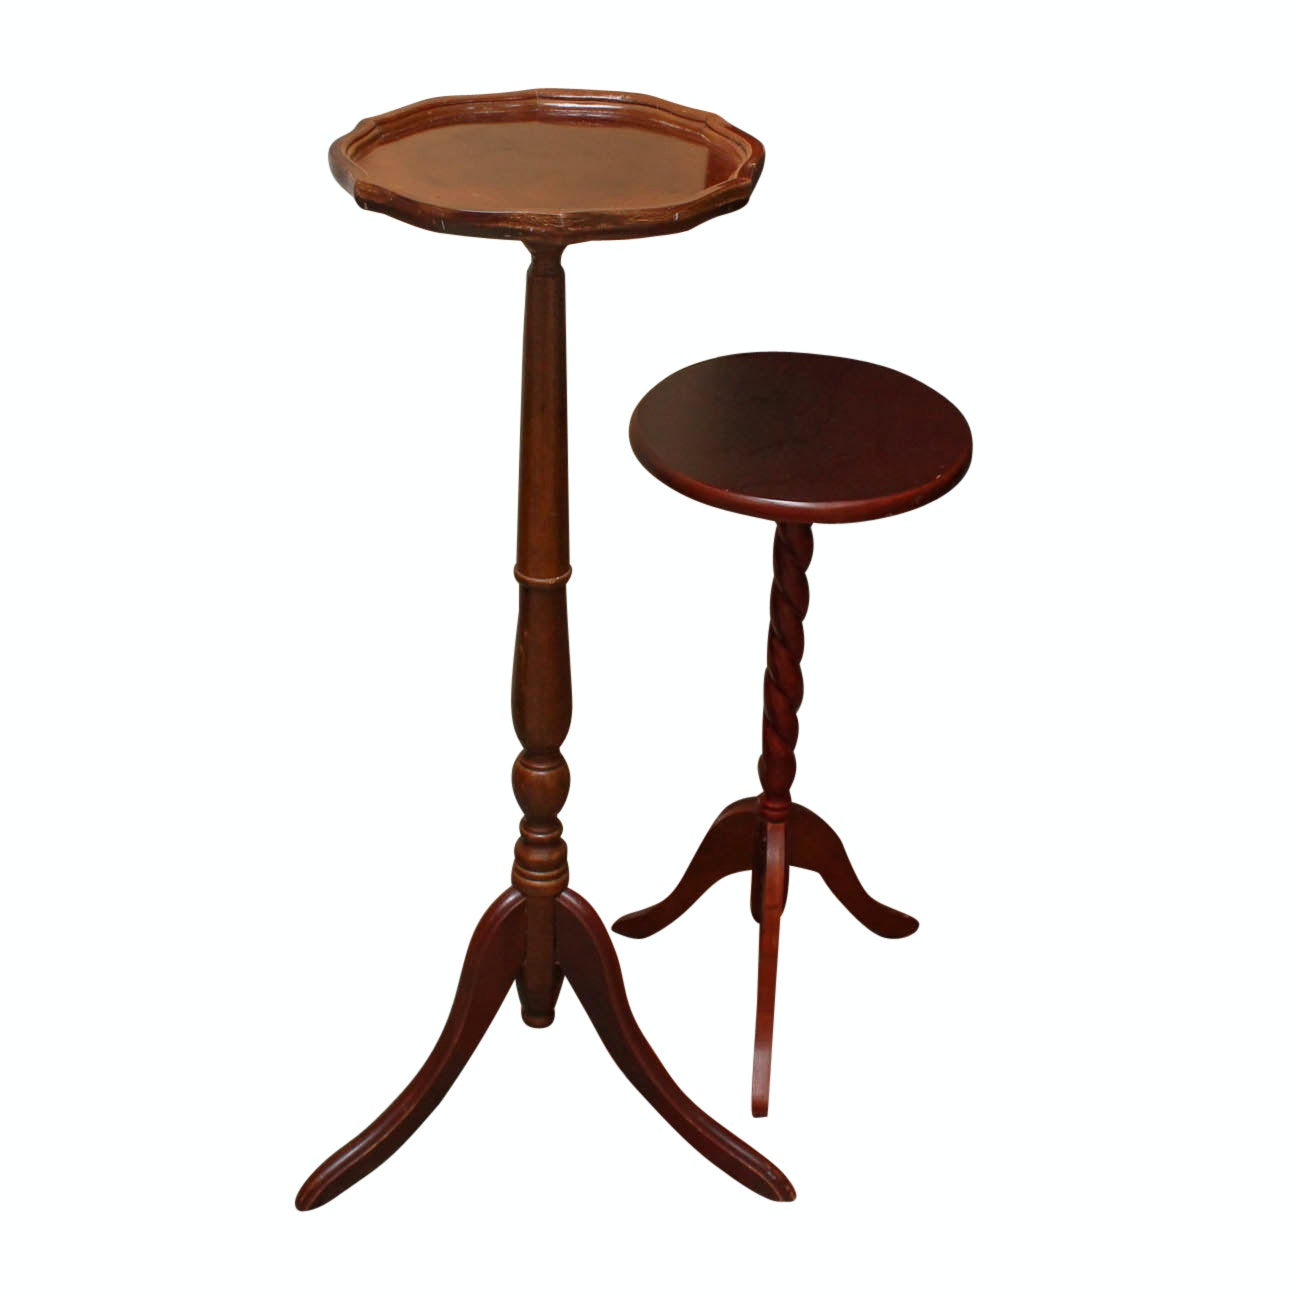 Wooden Pedestal Tables